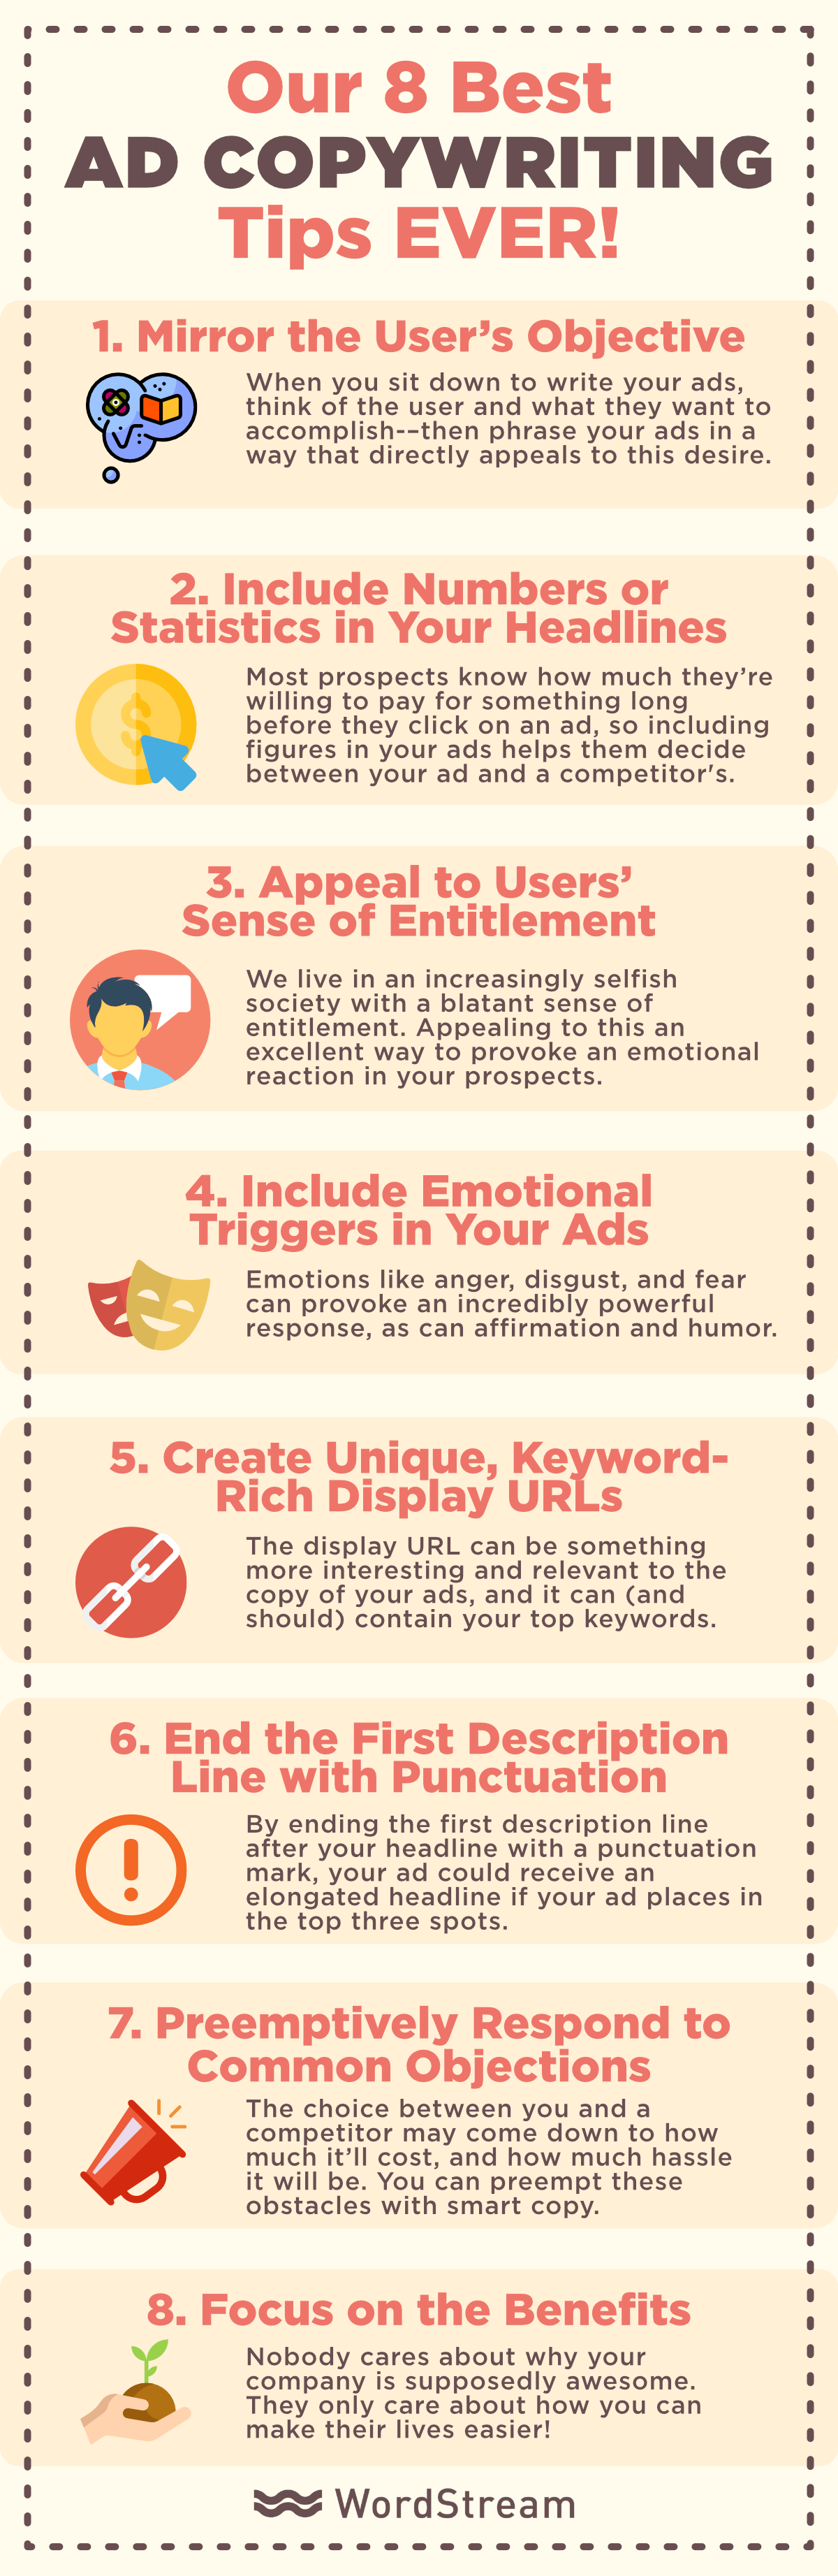 Our 8 Best Ad Copywriting Tips EVER! | WordStream